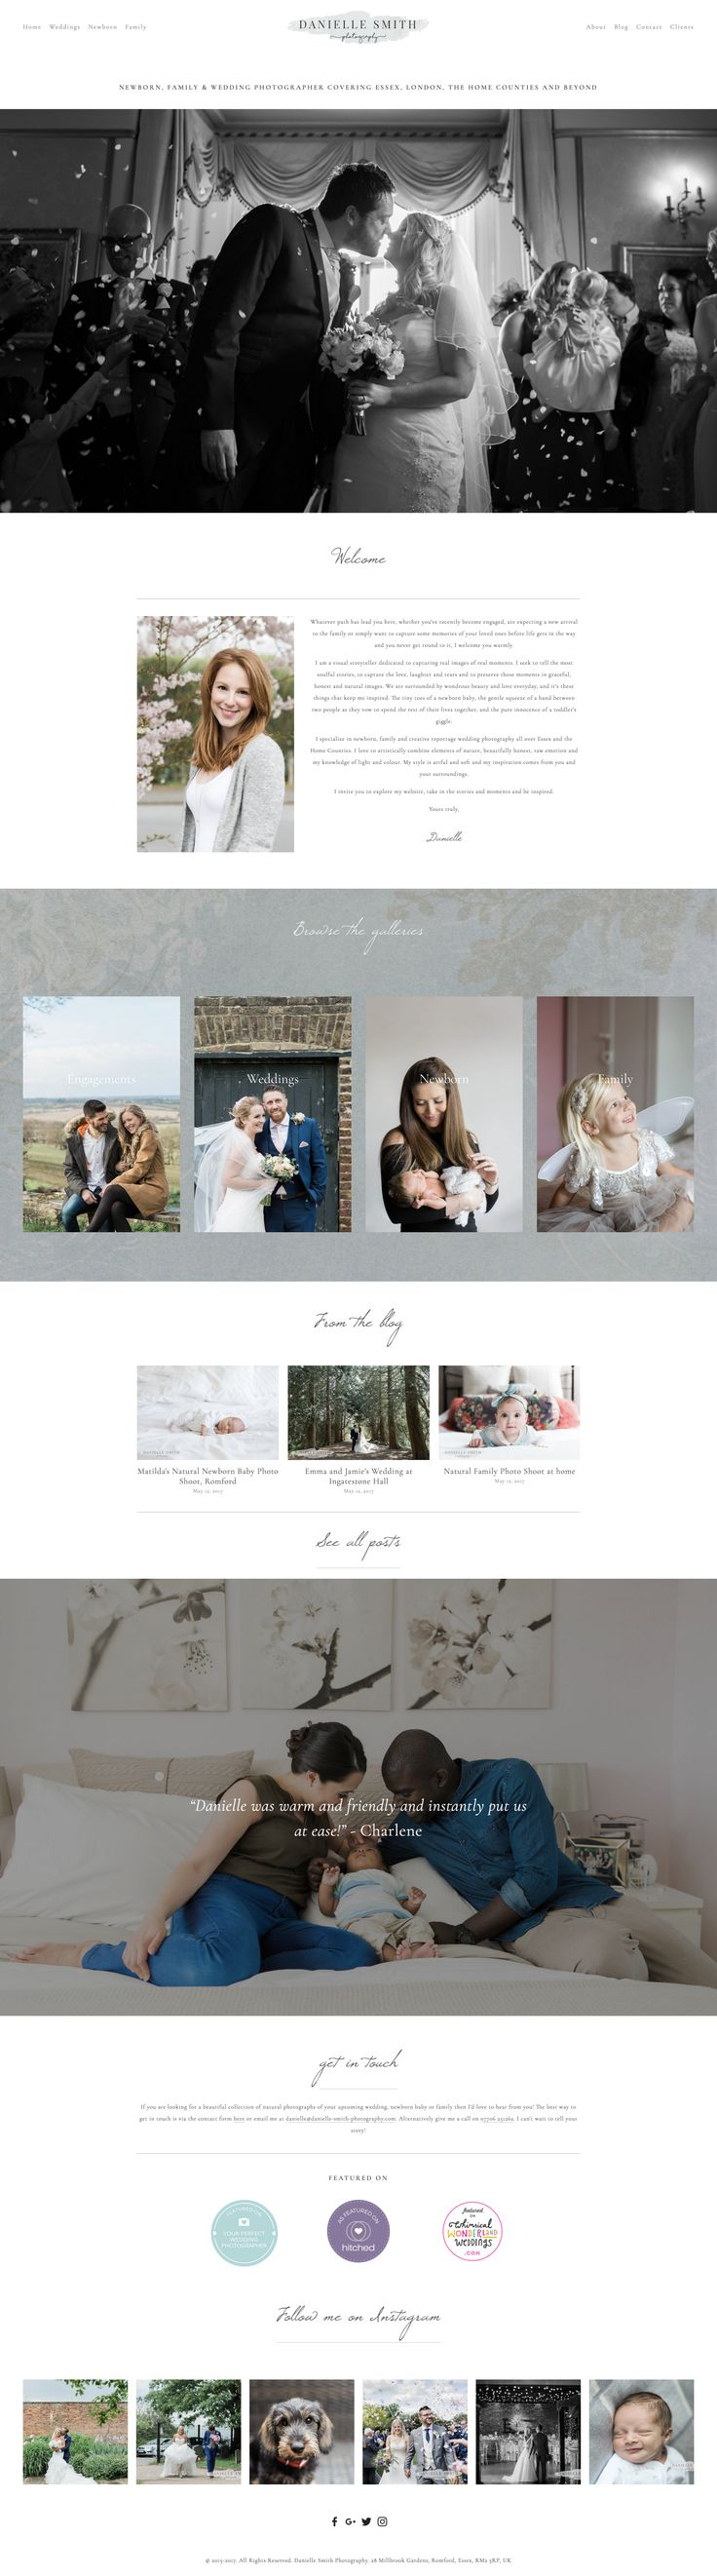 Redesign of Danielle Smith Photography's website. Built on #Squarespace Rally template.